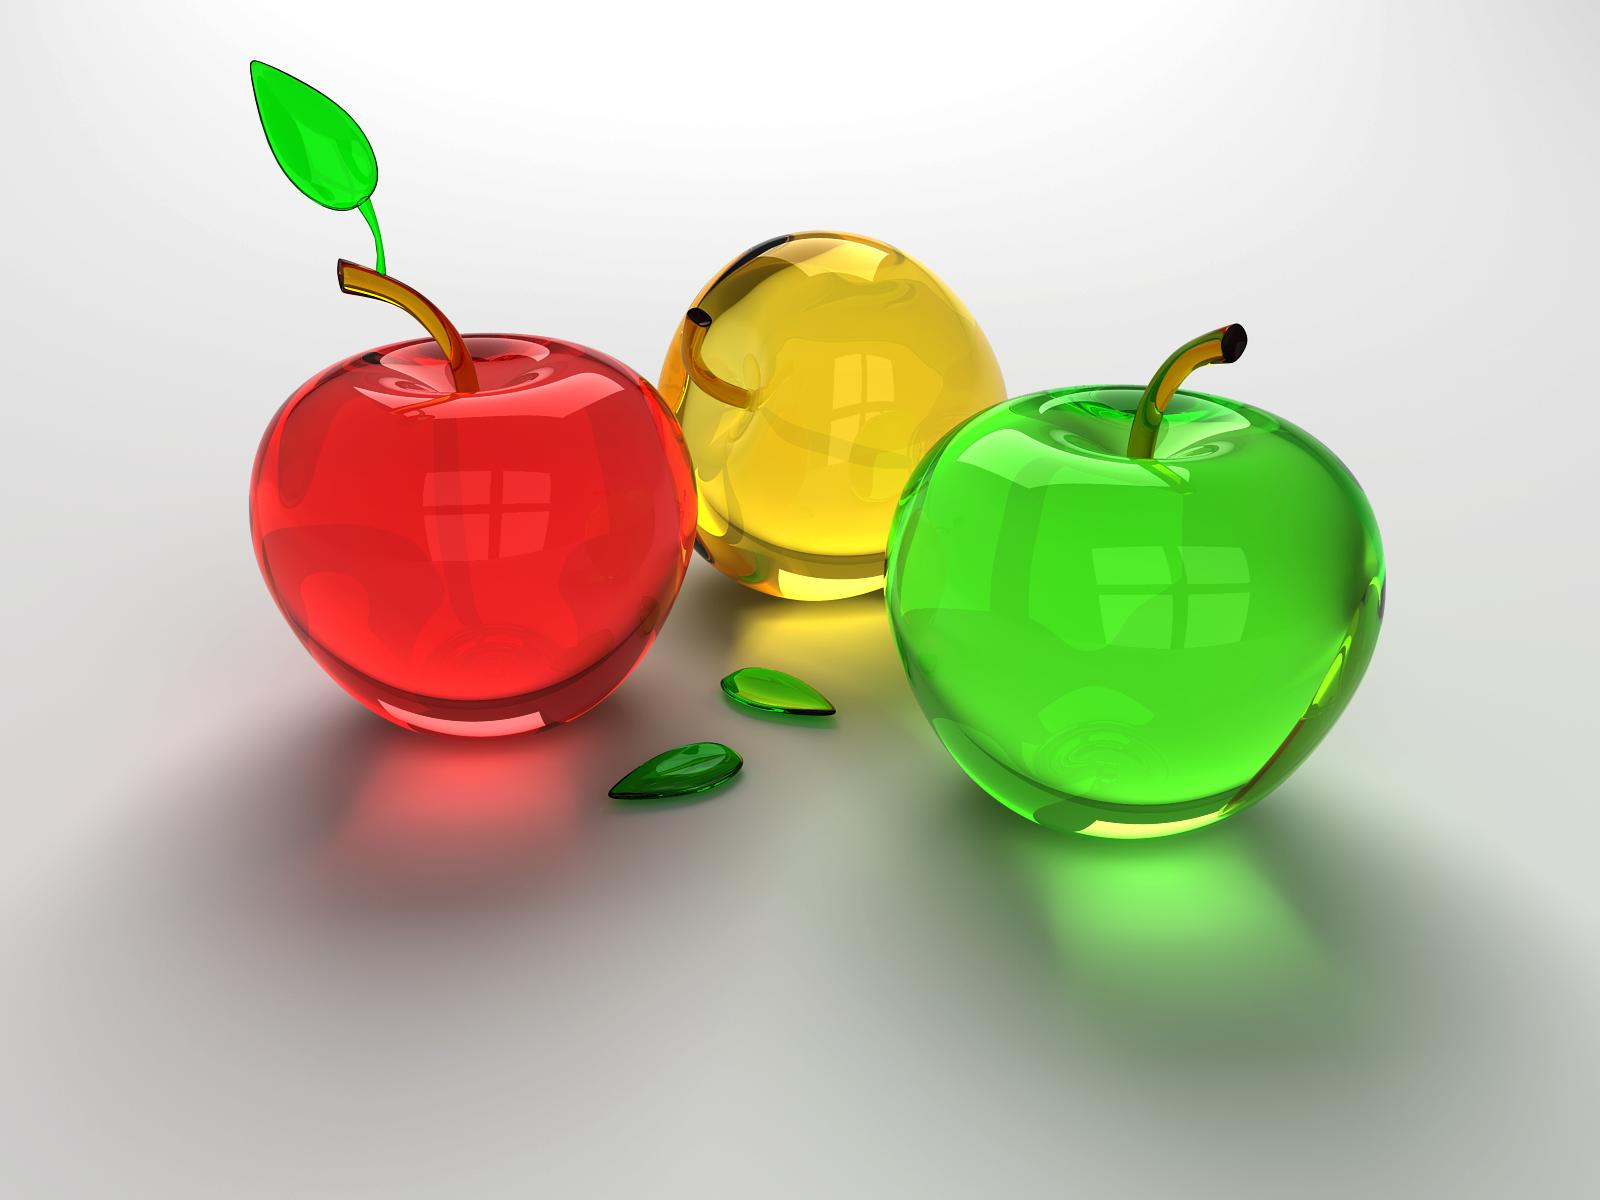 beautiful glasses apple pictures, beautiful glasses apple backgrouns